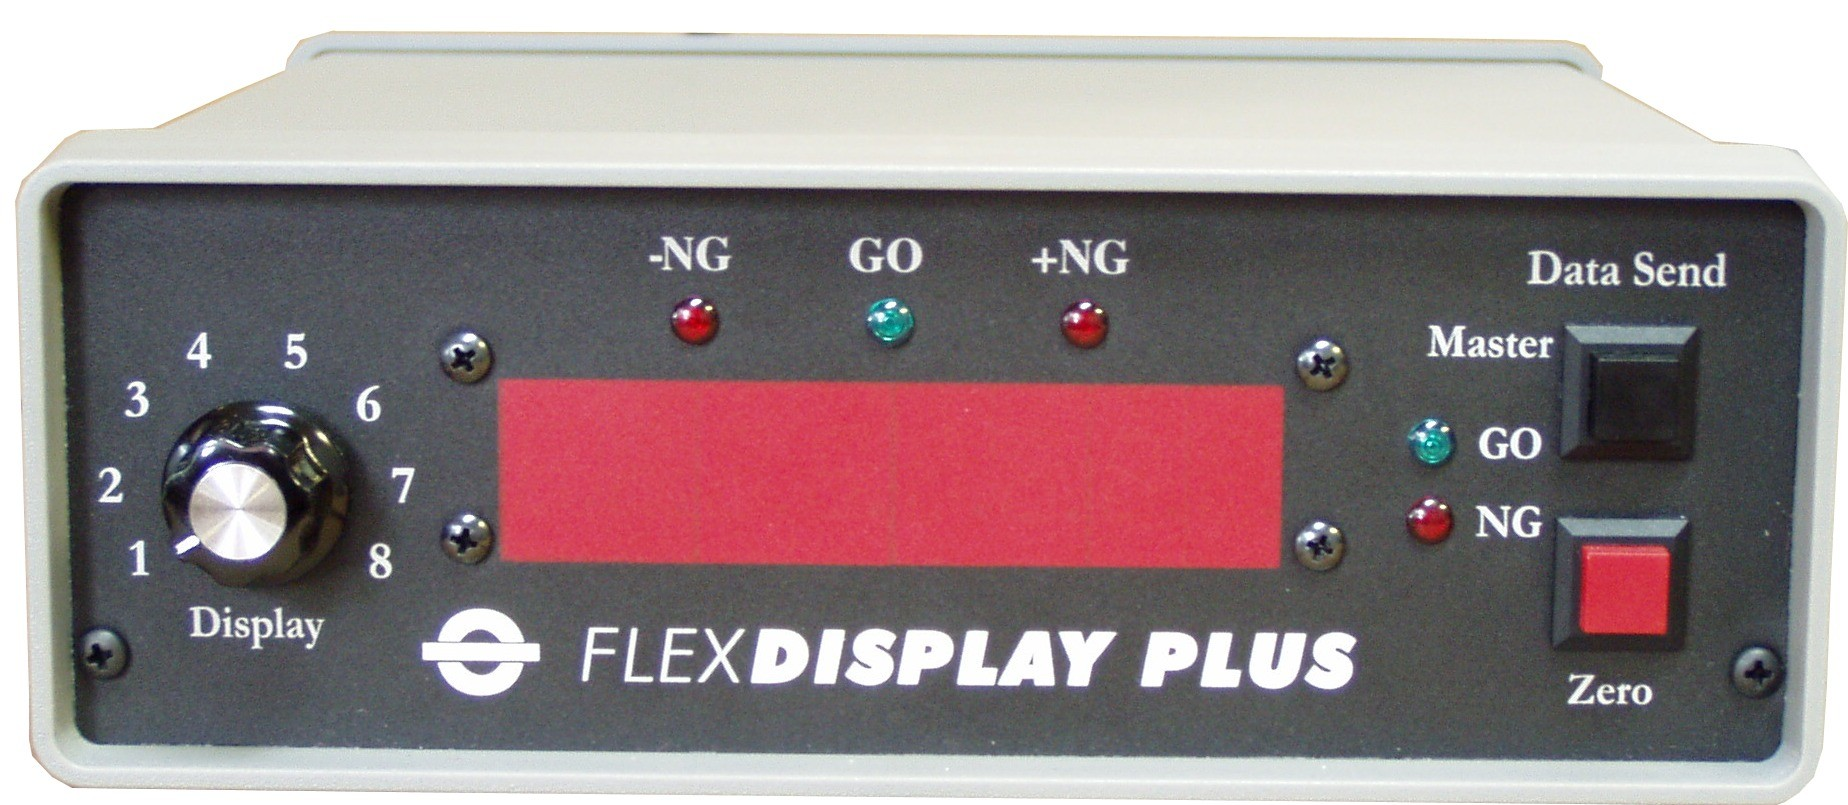 FlexDisplay Gage Interface & Remote Display FD-1PLUS (Front)